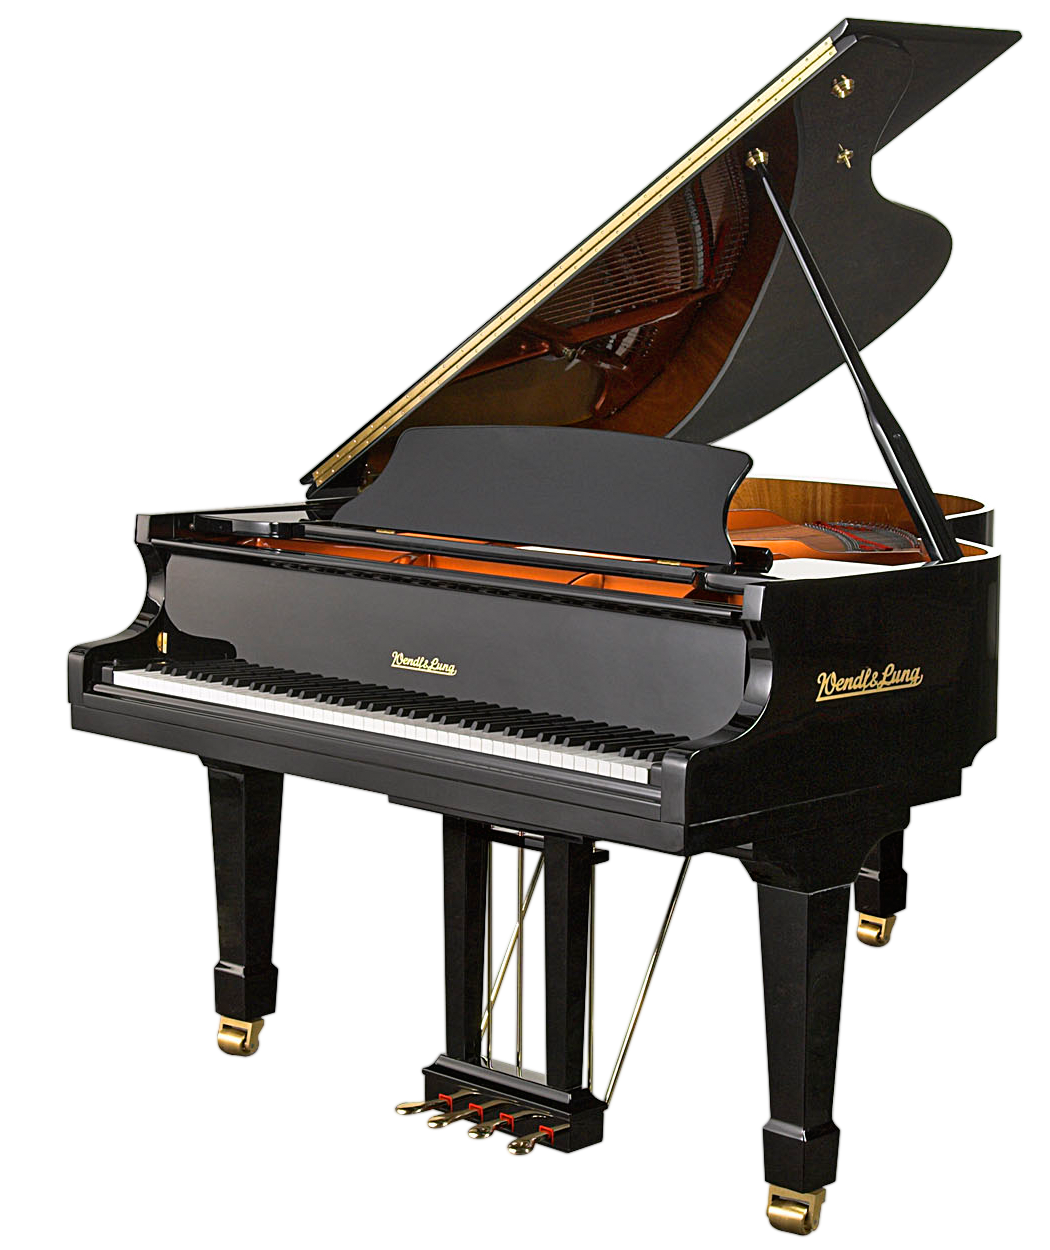 hq piano png transparent piano png images pluspng clip art piano keys clip art piano player